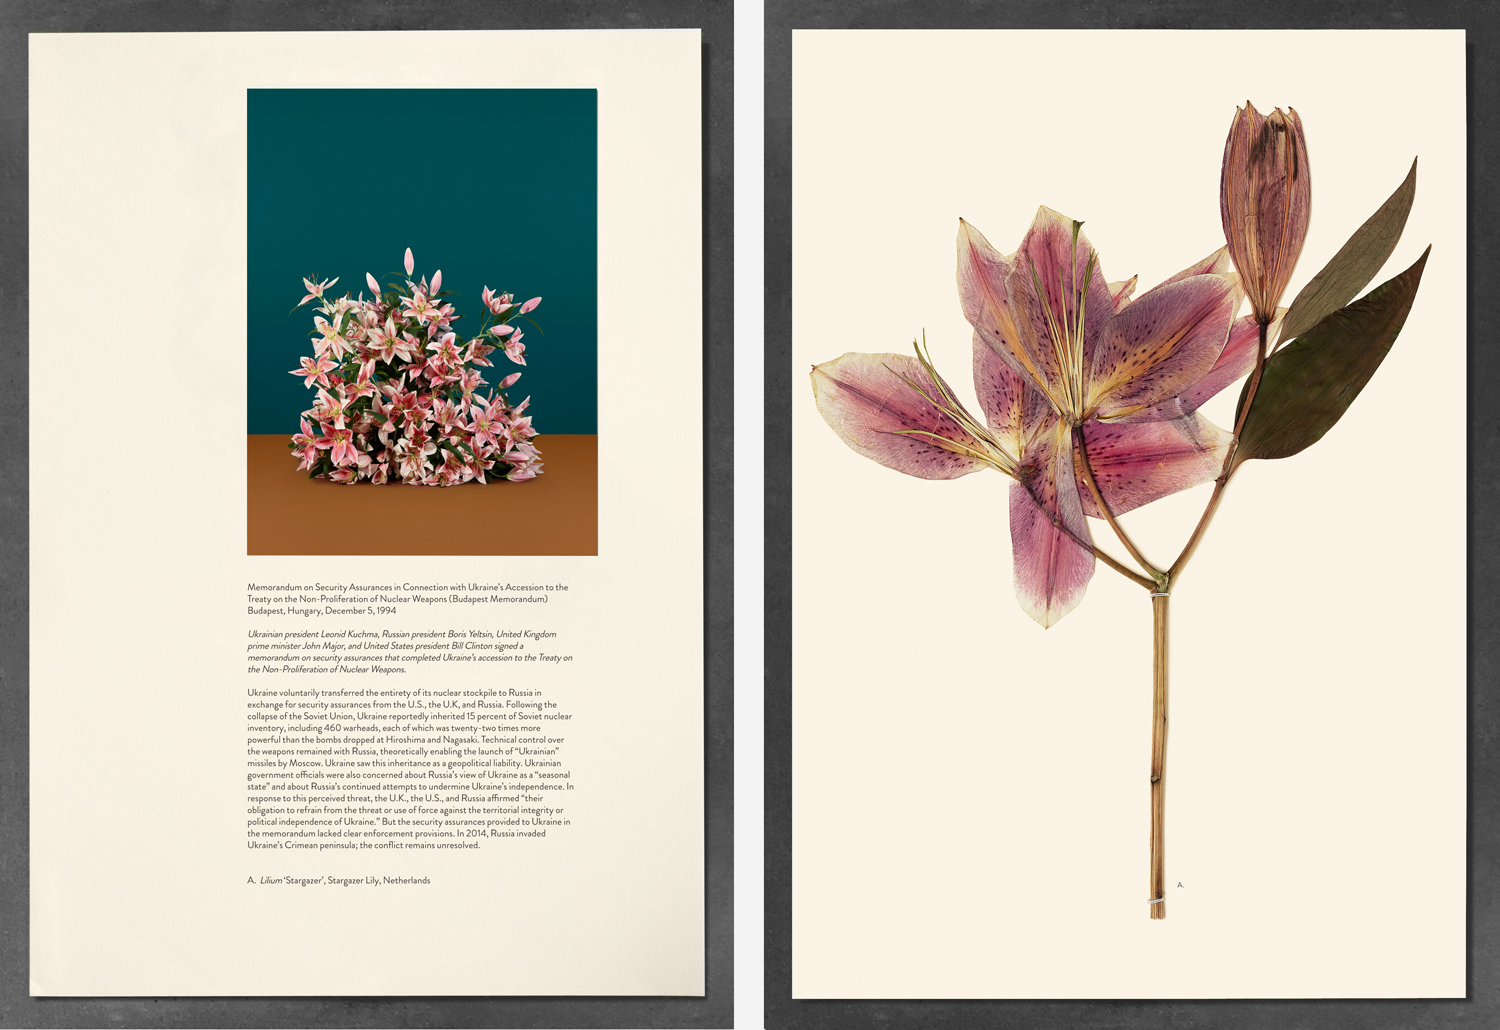 Memorandum on Security Assurances in Connection with Ukraine's Accession to the Treaty on the Non-Proliferation of Nuclear Weapons (Budapest Memorandum), Budapest, Hungary, December 5, 1994; Lilium 'Stargazer', Stargazer Lily, Netherlands. Paperwork and the Will of Capital, 2015.